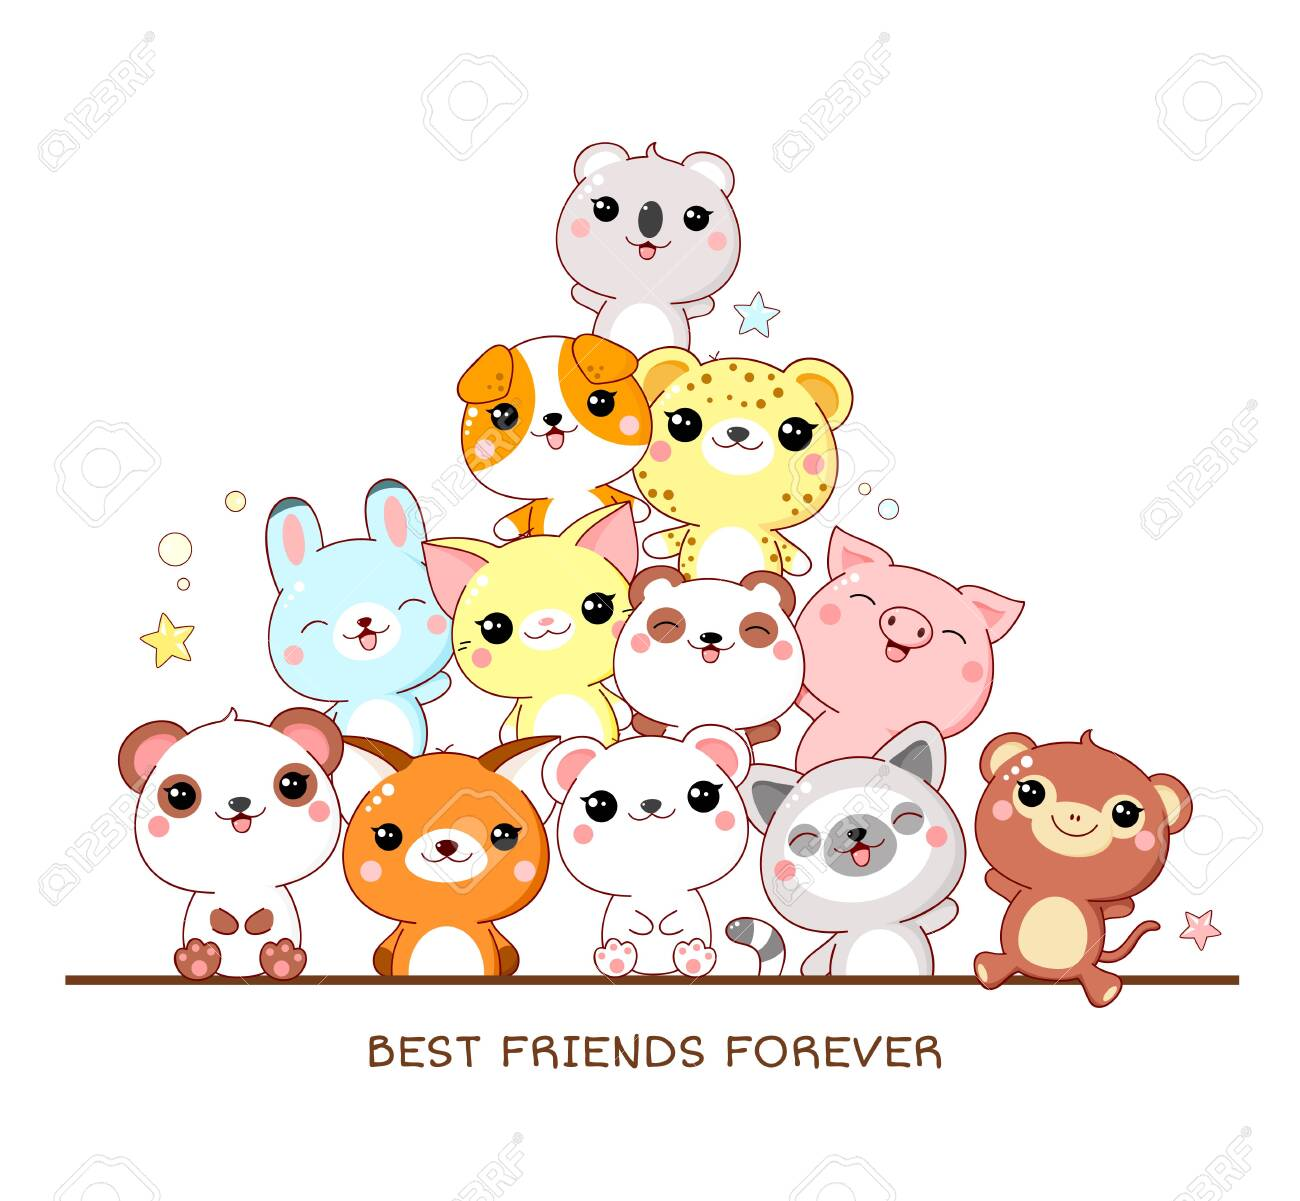 Best friends forever. Square poster with cute animals - monkey, panda, fox, lemur, pig, leopard, dog, rabbit, cat, koala in kawaii style. Isolated on white background. EPS8 - 140523617